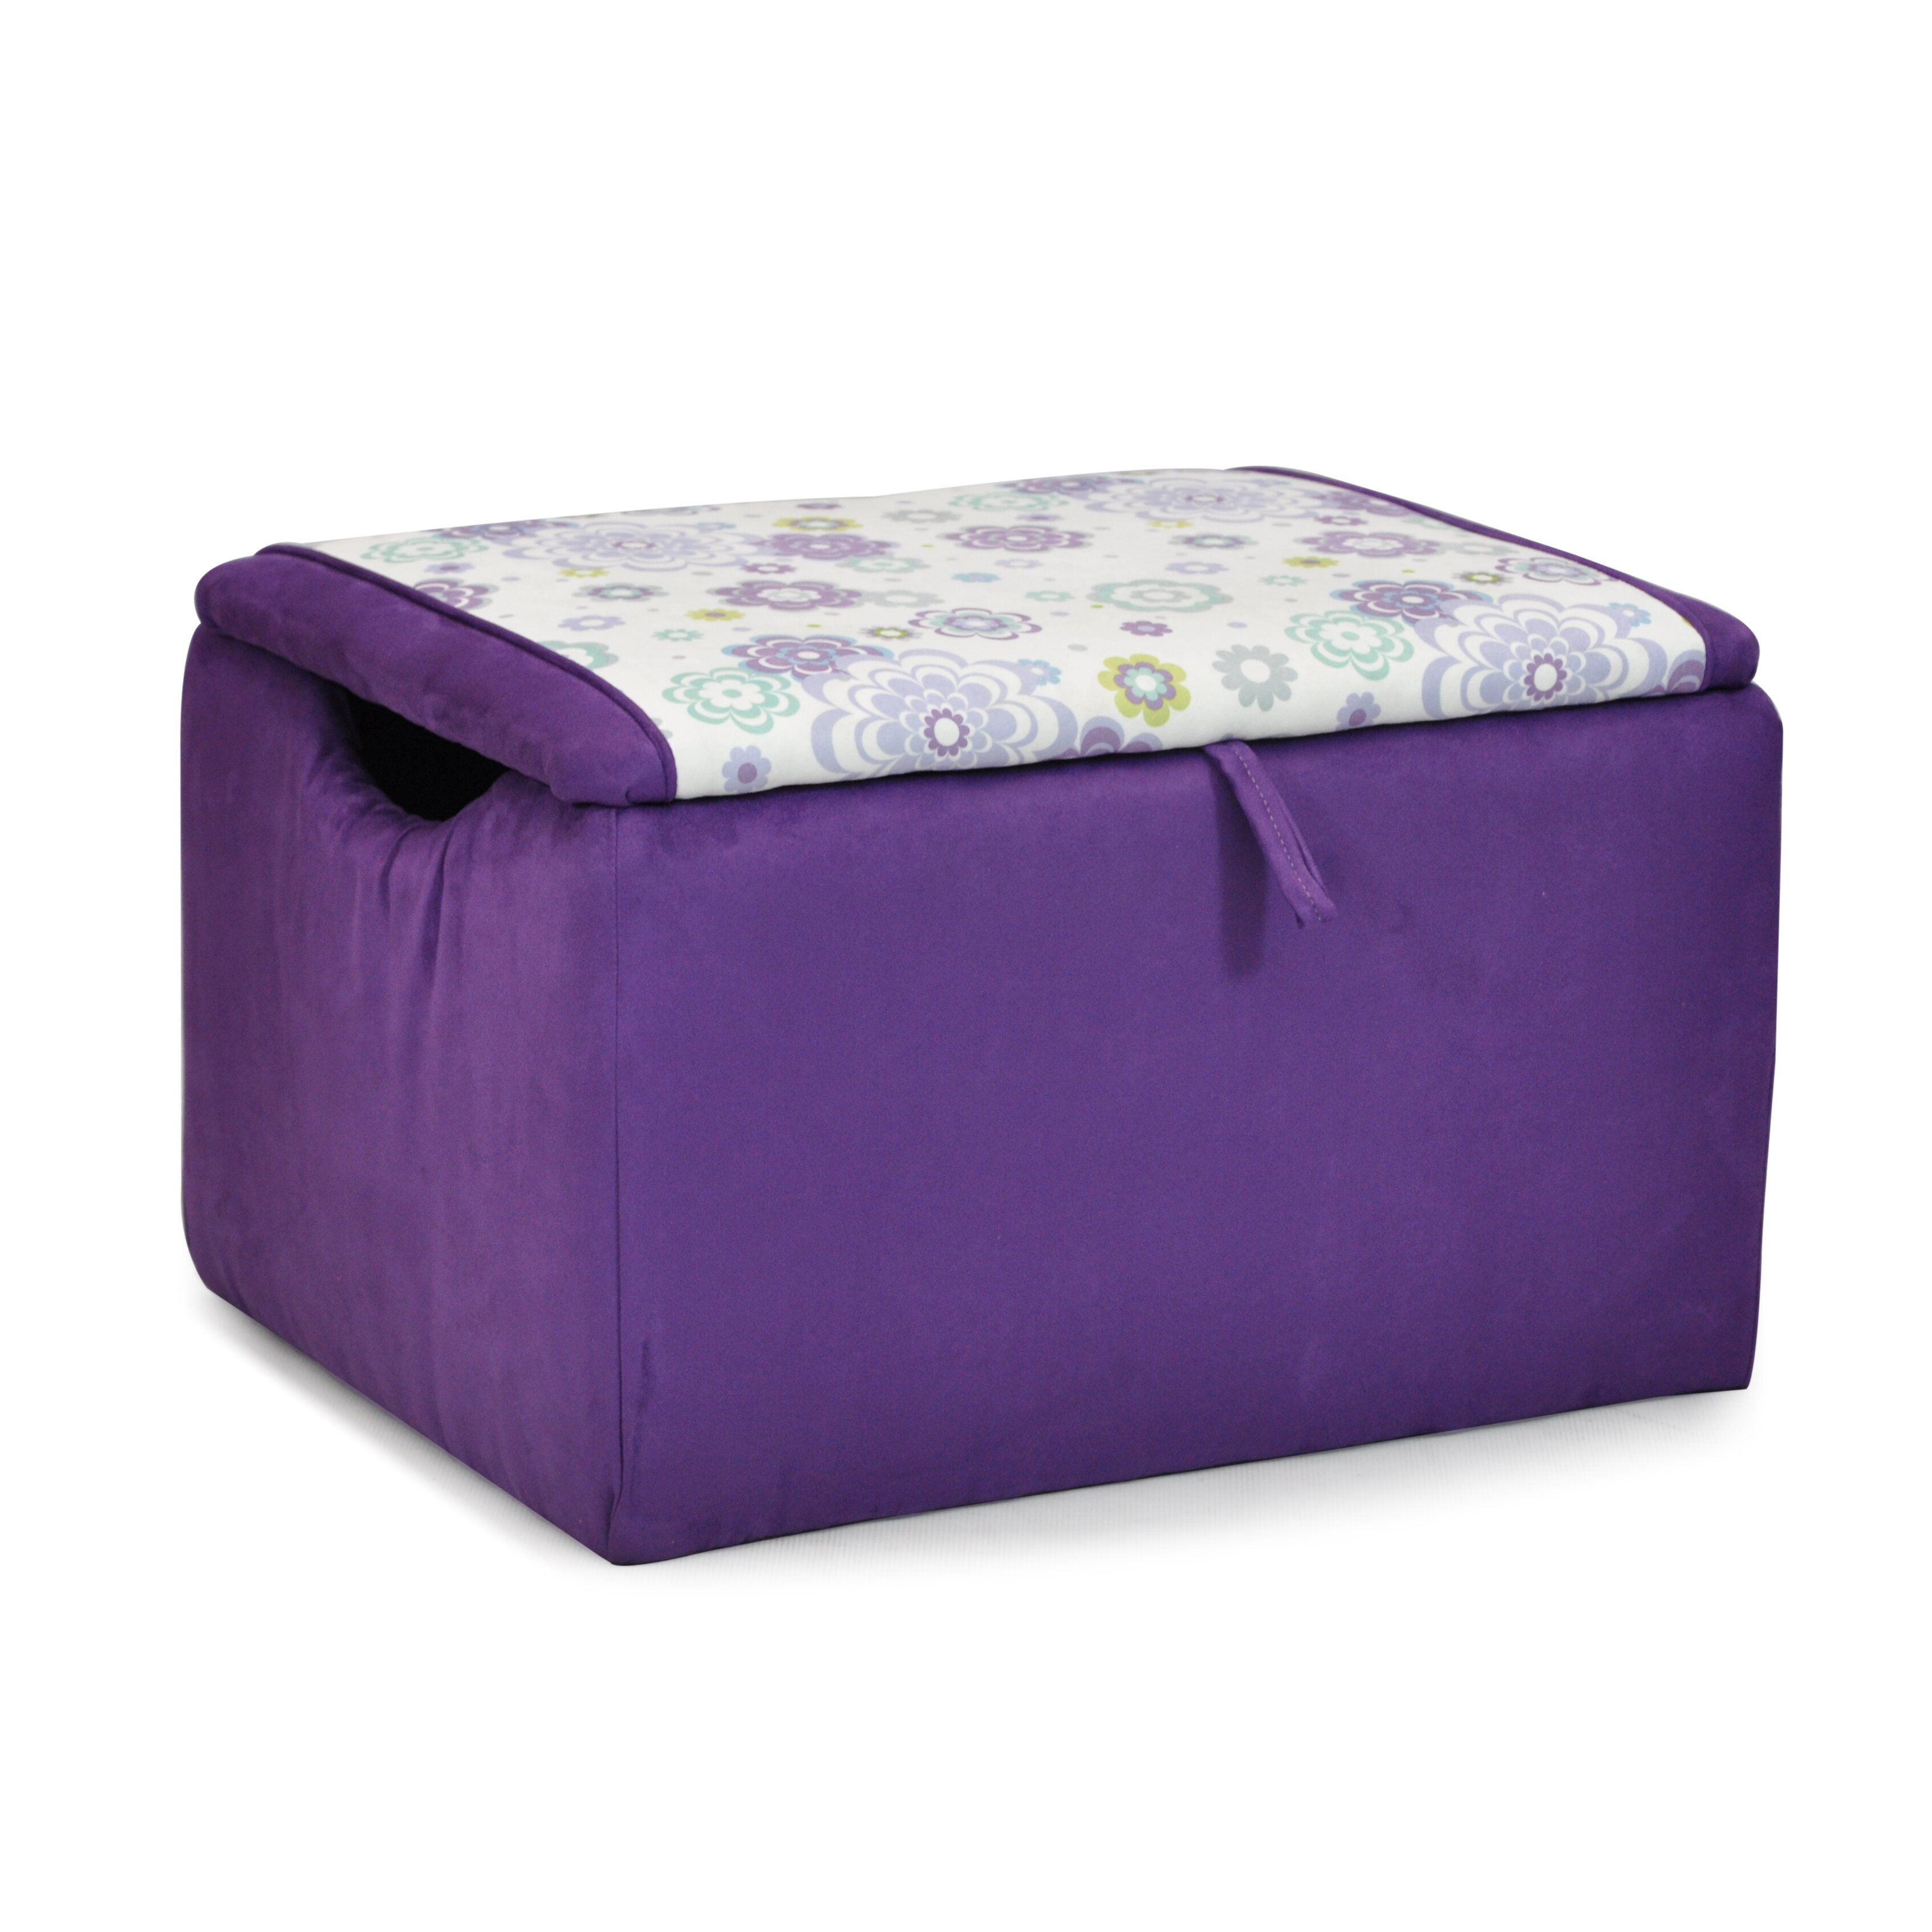 kidzworld mixy kids suede ottoman with storage compartment